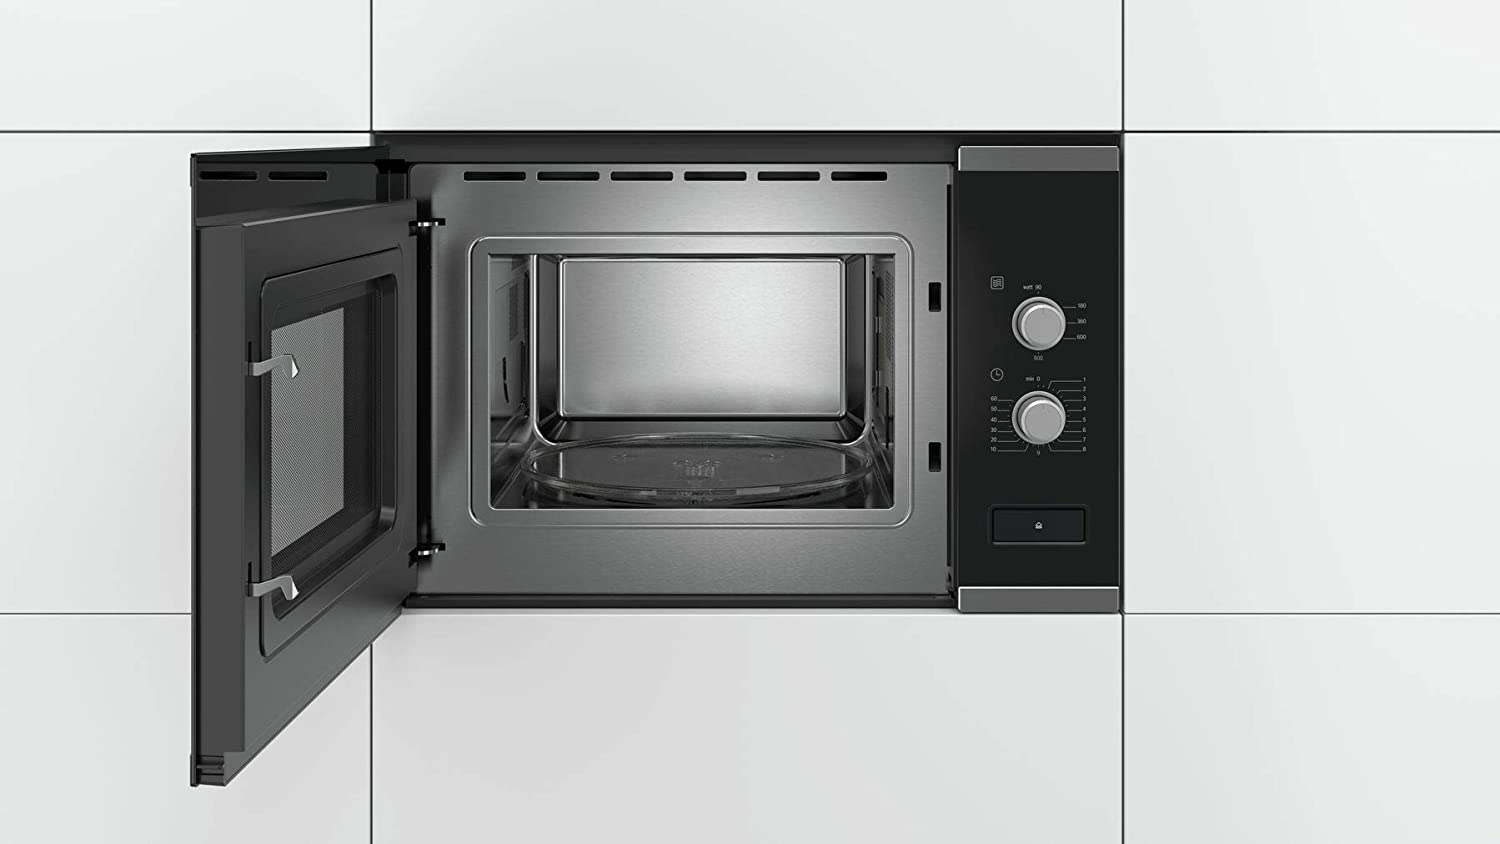 BOSCH BFL550MS0 - Micro-ondes monofonction encastrable inox ...